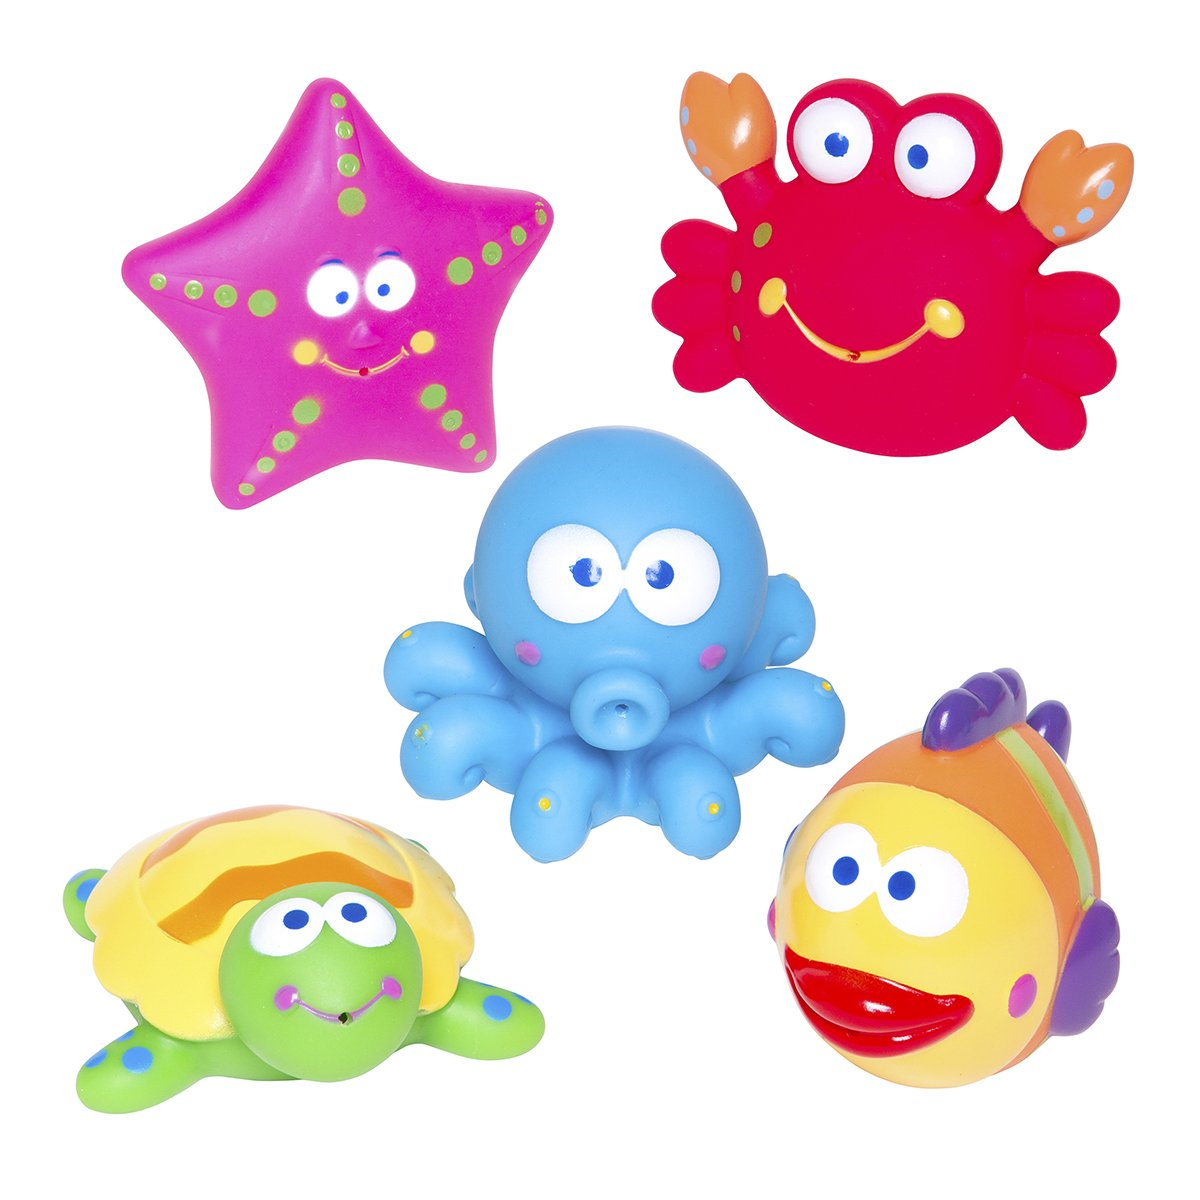 Amazon.com : Elegant Baby Bath Time Fun Rubber Water Squirtie Toys ...